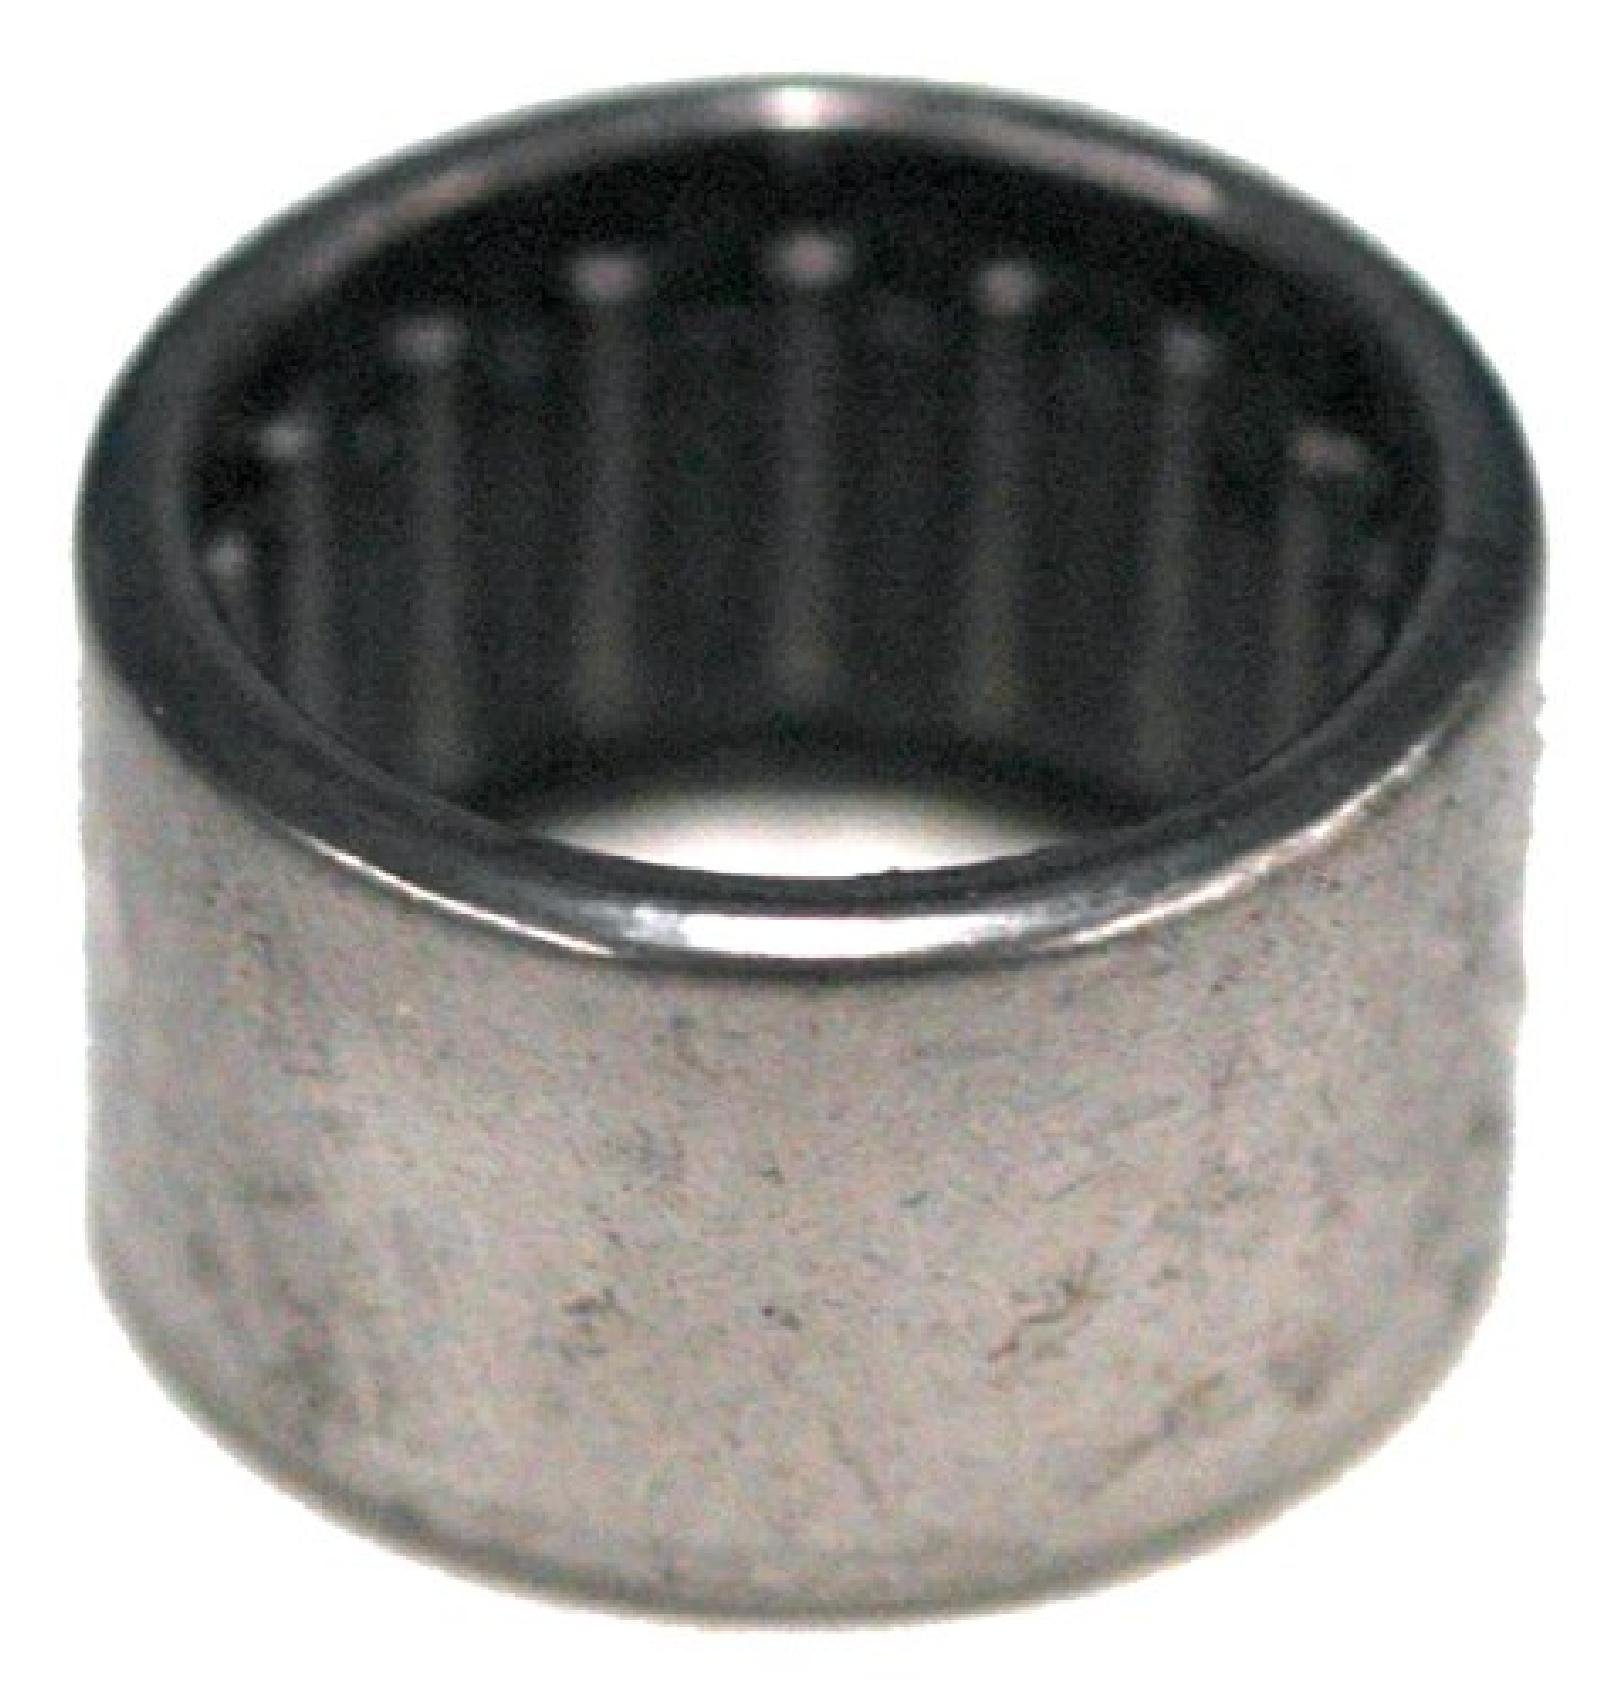 BEARING NEEDLE 5/8 part# 8656 by Rotary